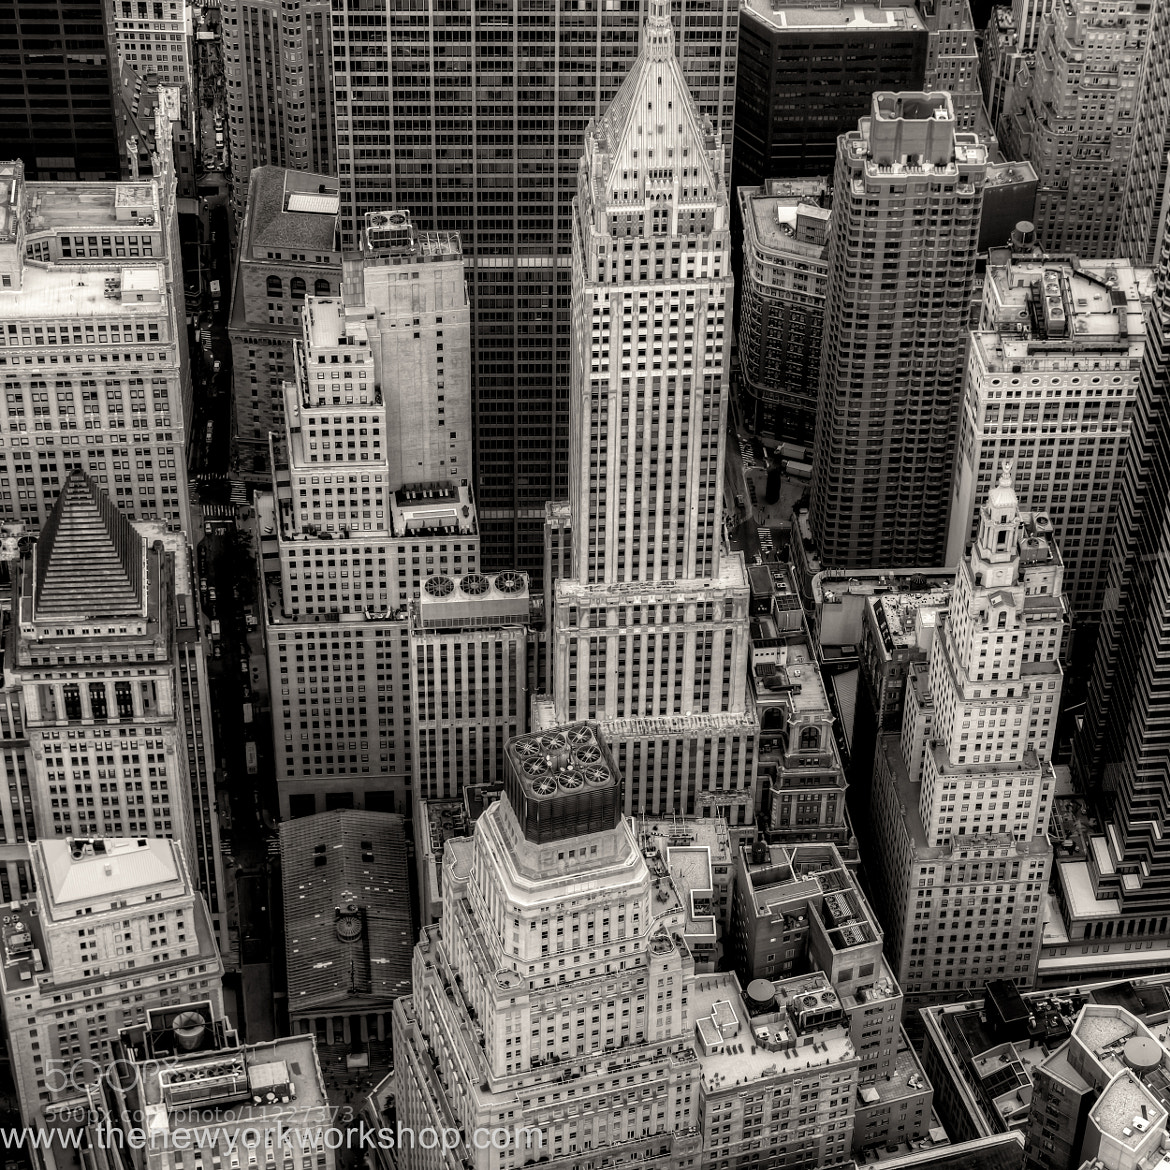 Photograph Walled up wall street by regis boileau on 500px